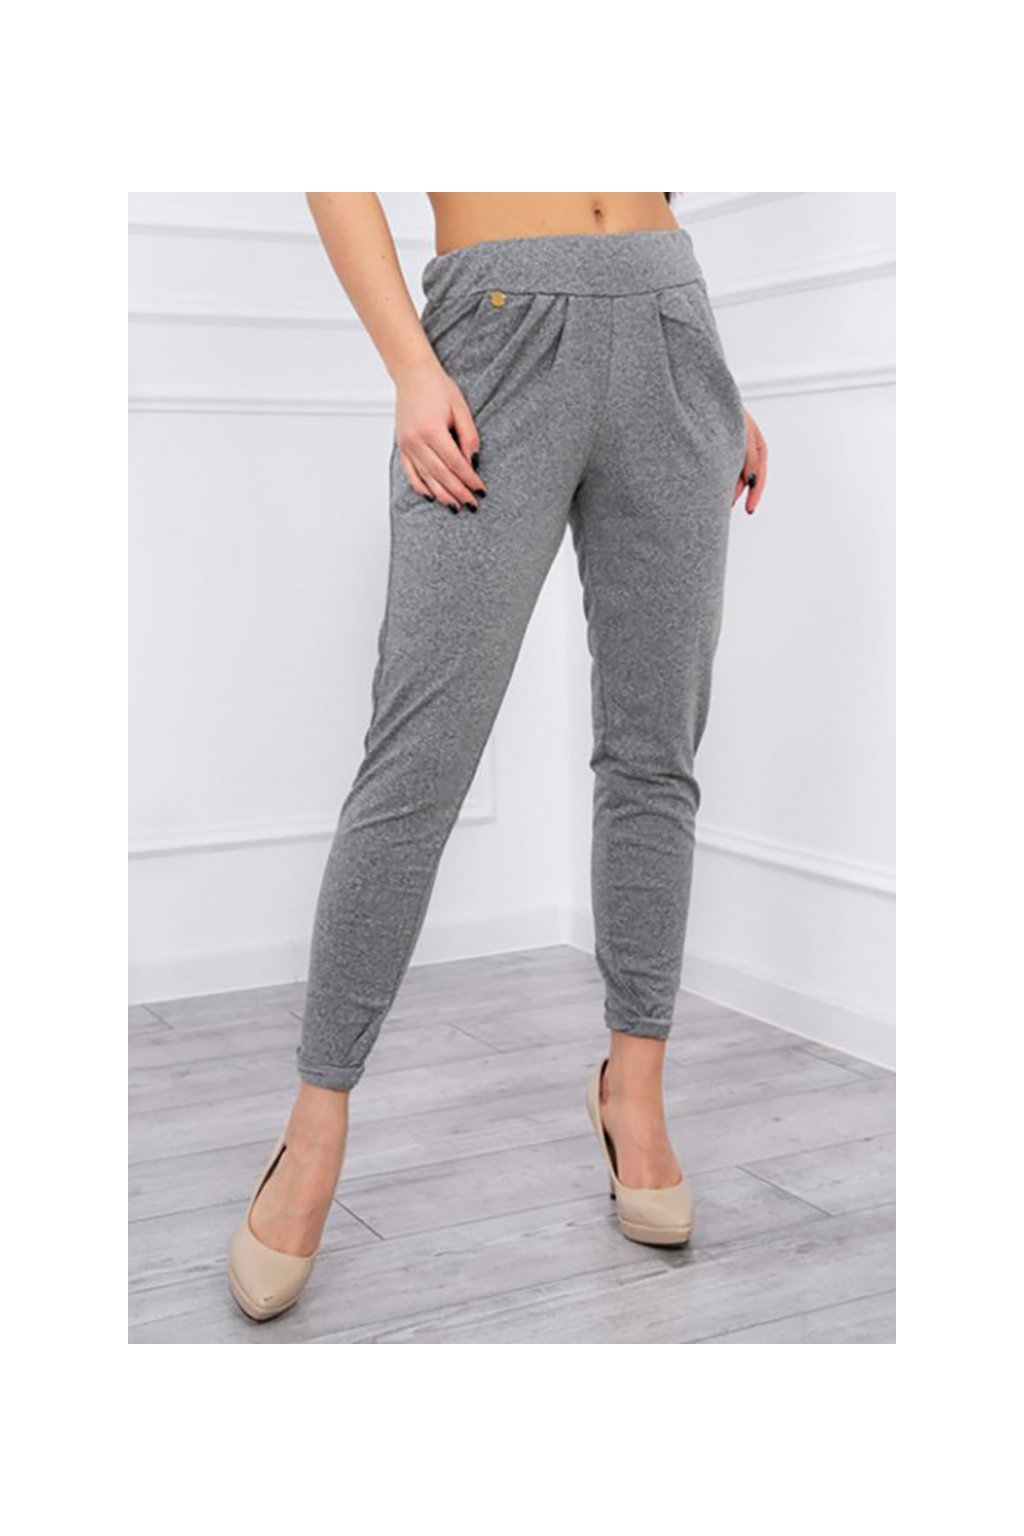 38682 2 eng pm sports trousers with wrinkles gray 607 3